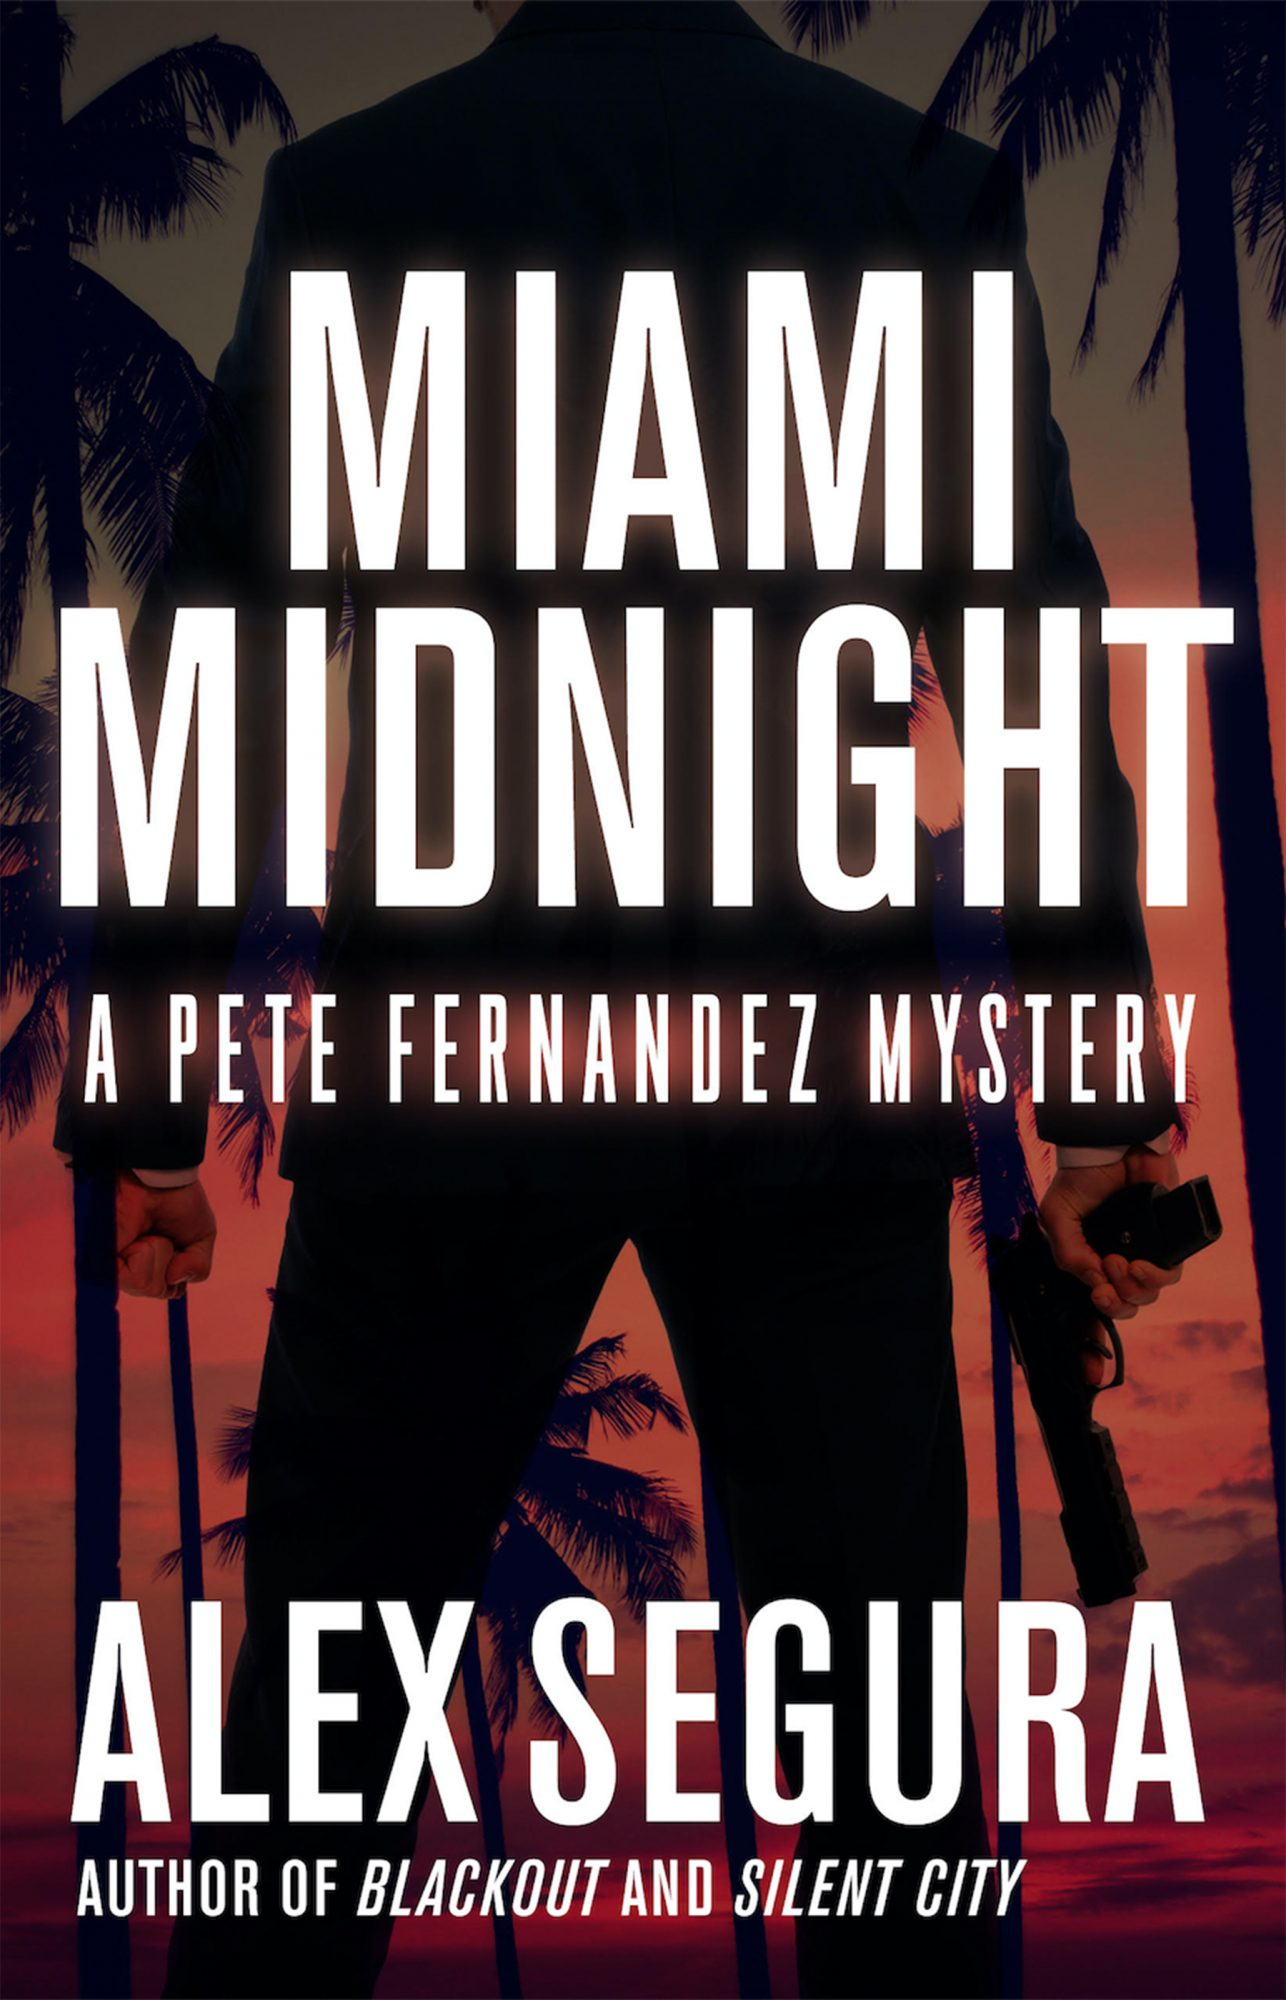 Miami Midnight, by Alex Segura